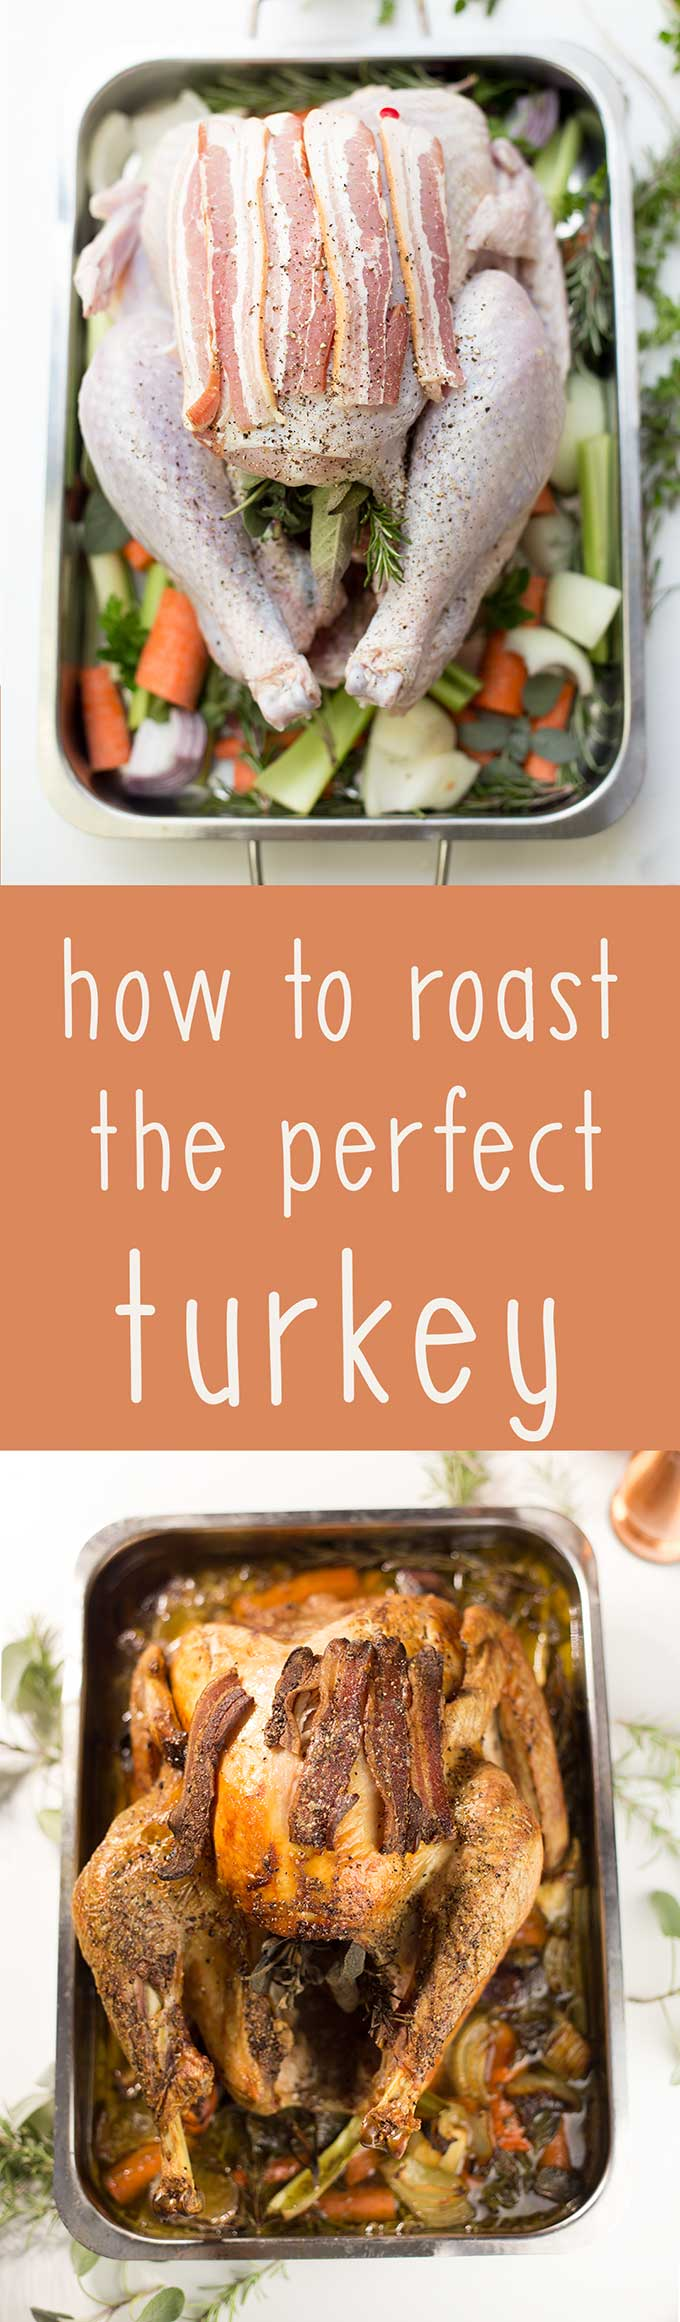 How to Roast the Perfect Turkey! Step-by-step directions to get a moist and delicious turkey, using fresh herbs and veggies in a flavorful broth.